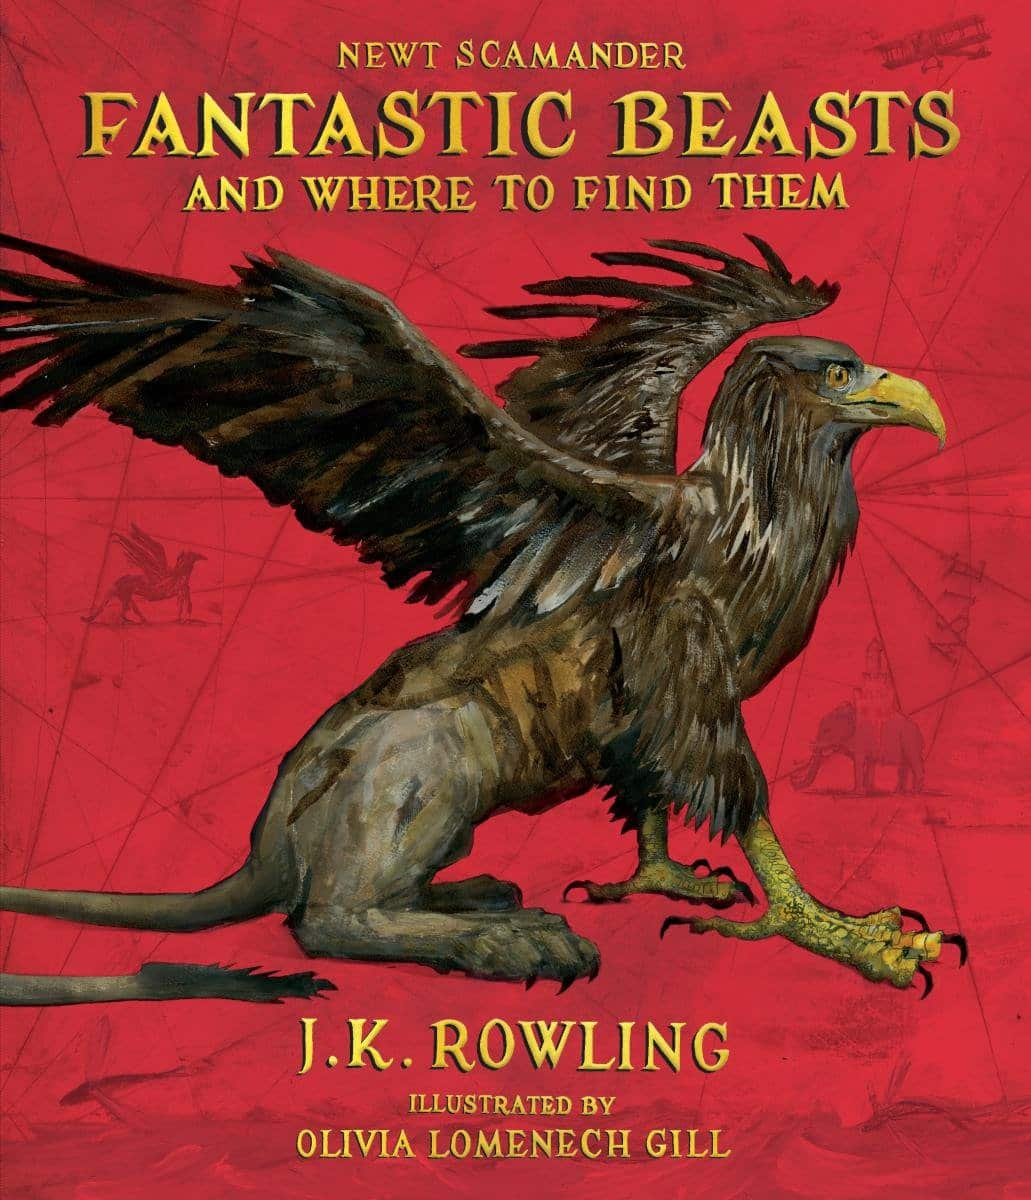 Fantastic Beasts and Where to Find Them Illlustrated $15.74 Amazon